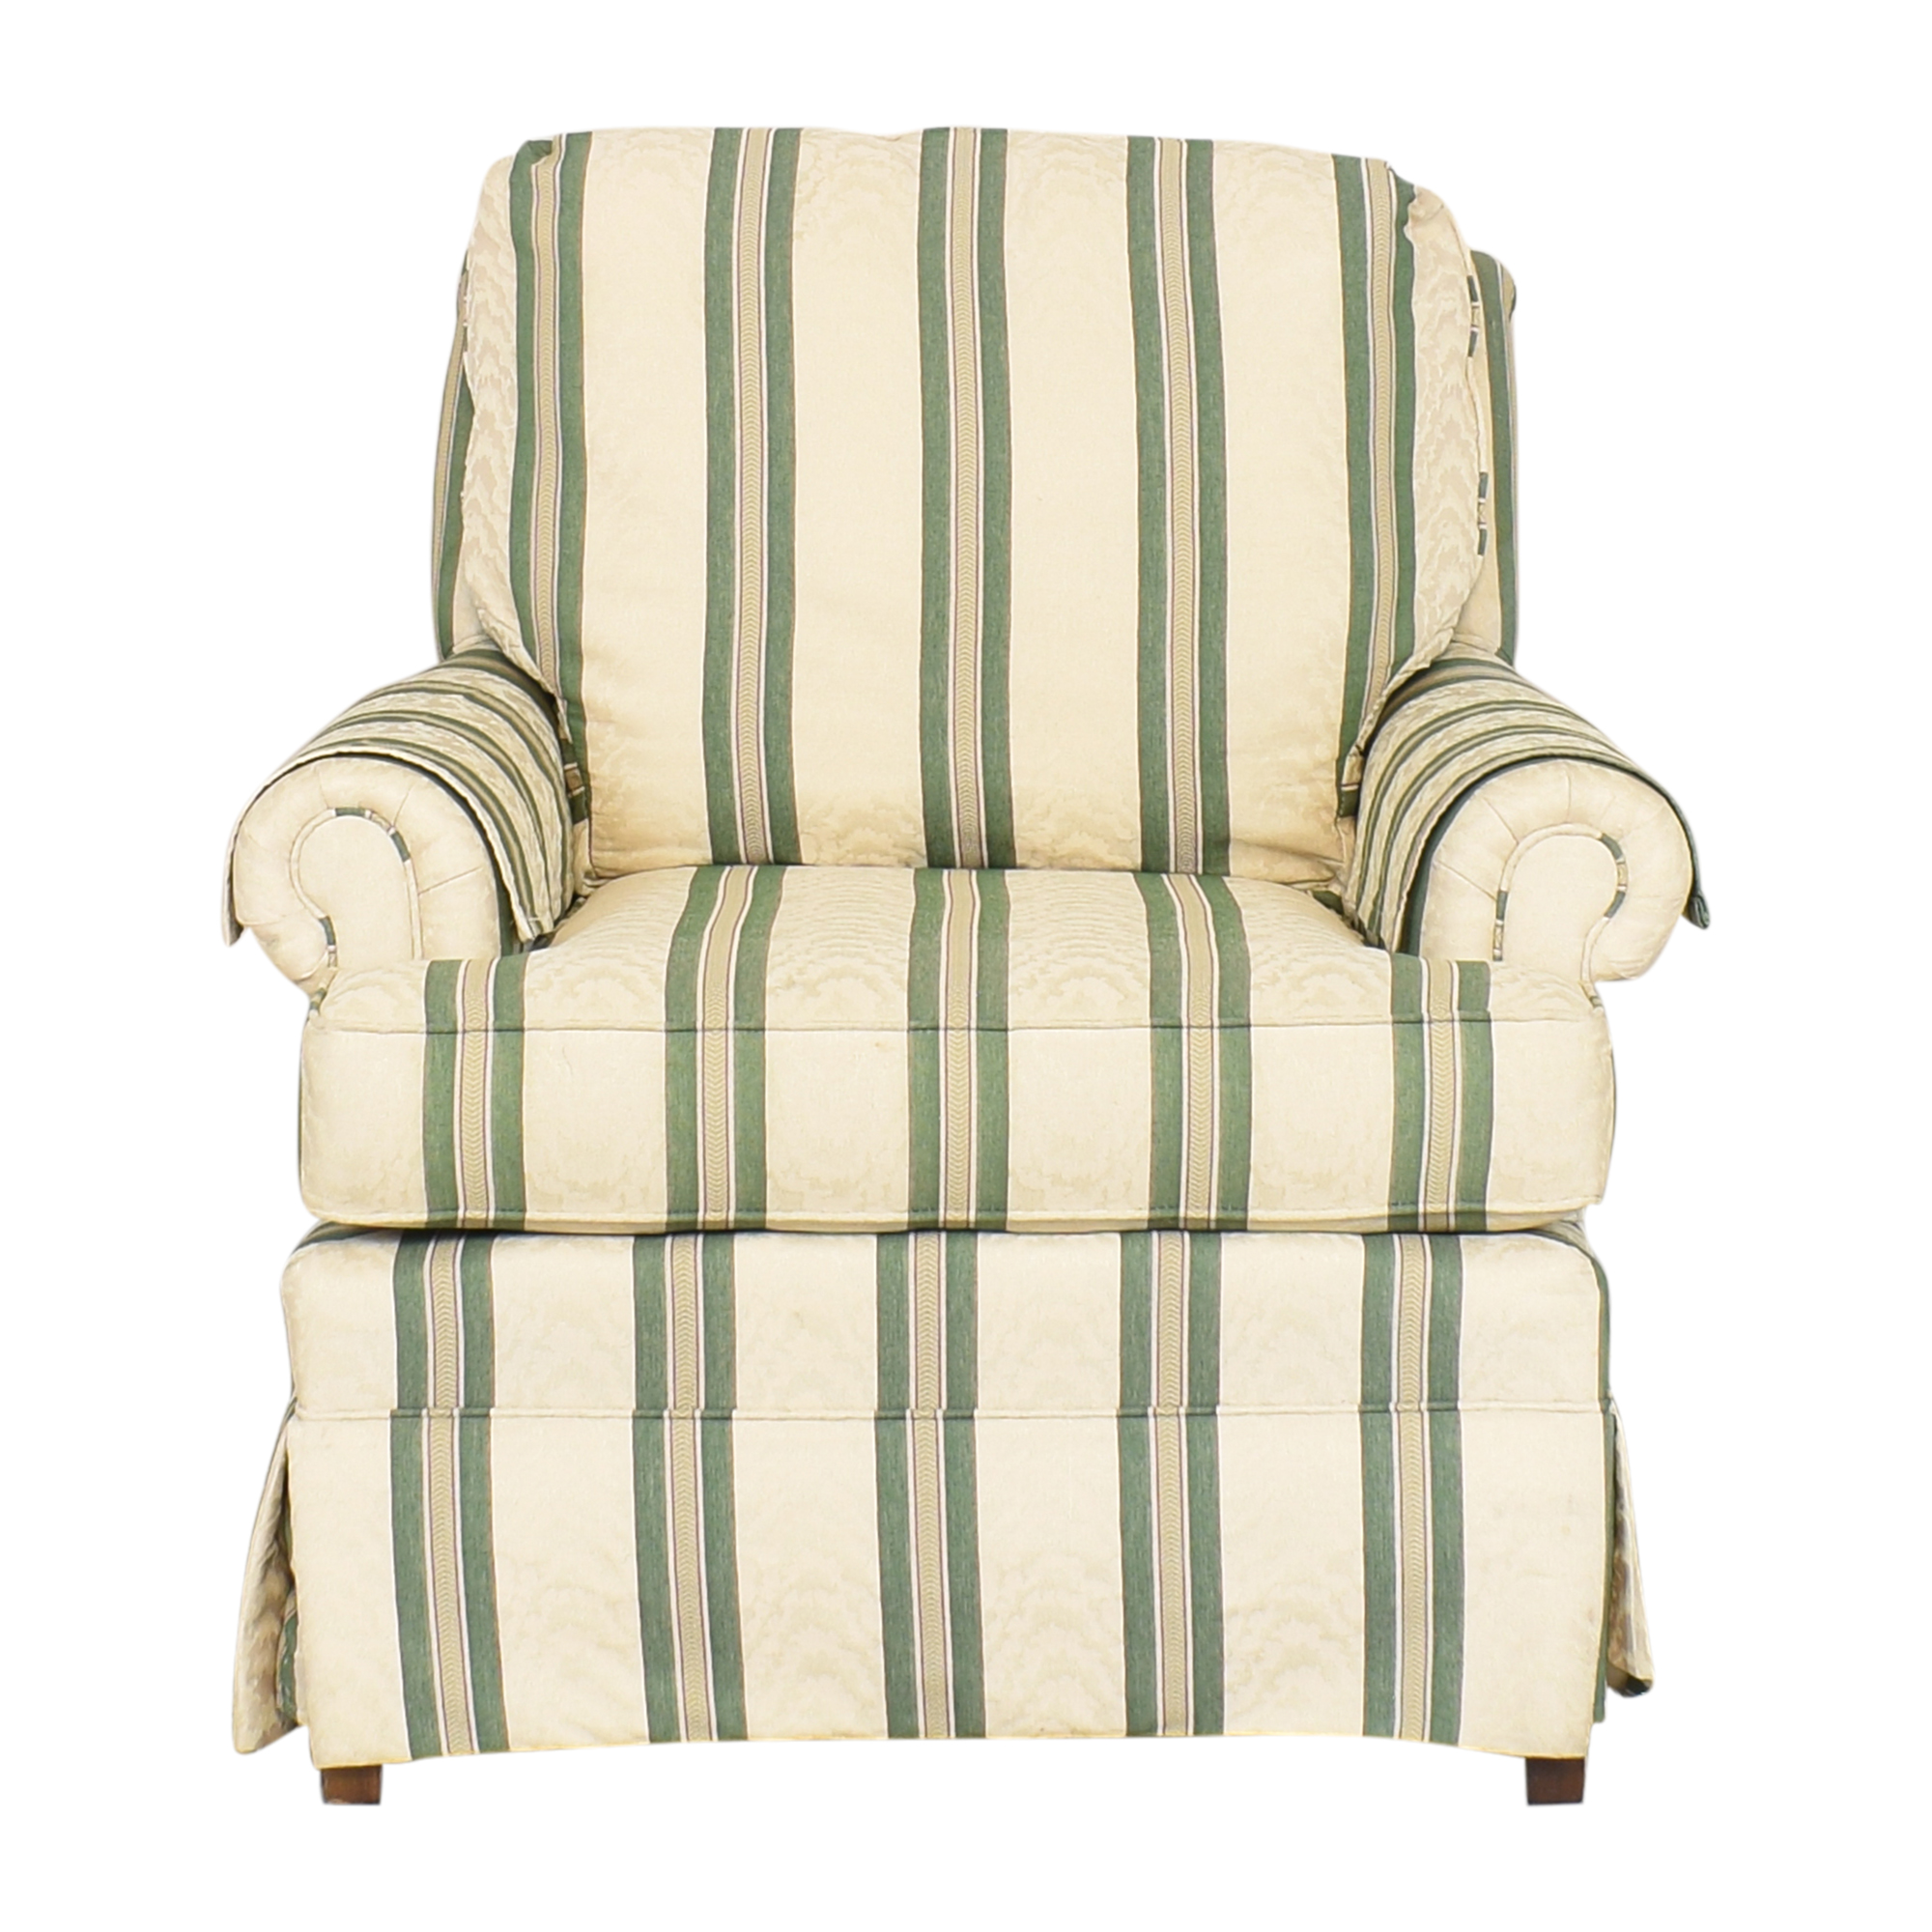 buy Pembrook Chair Upholstered Accent Chair and Ottoman Pembrook Chair Chairs